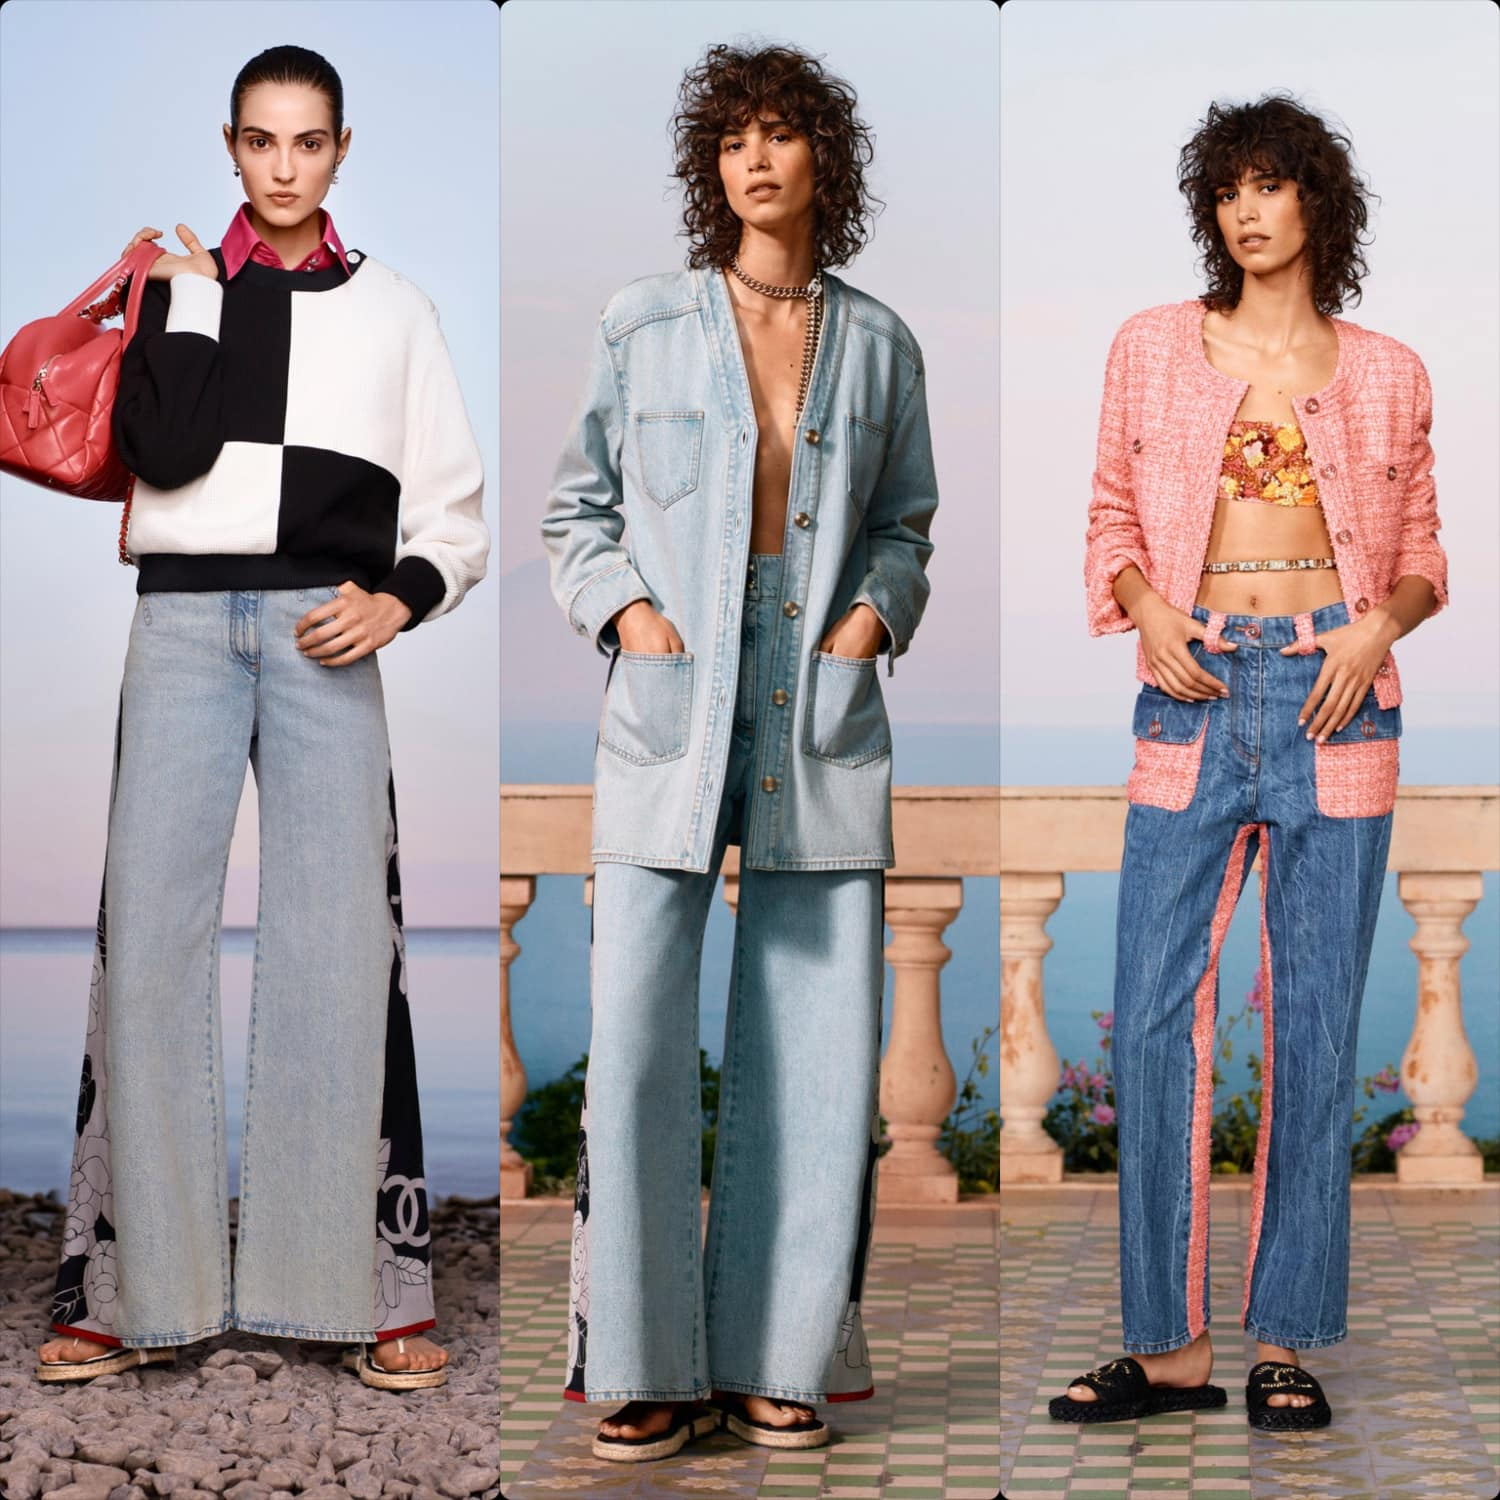 Chanel Cruise 2021 Paris - Resort Collection by Virginie Viard- looks